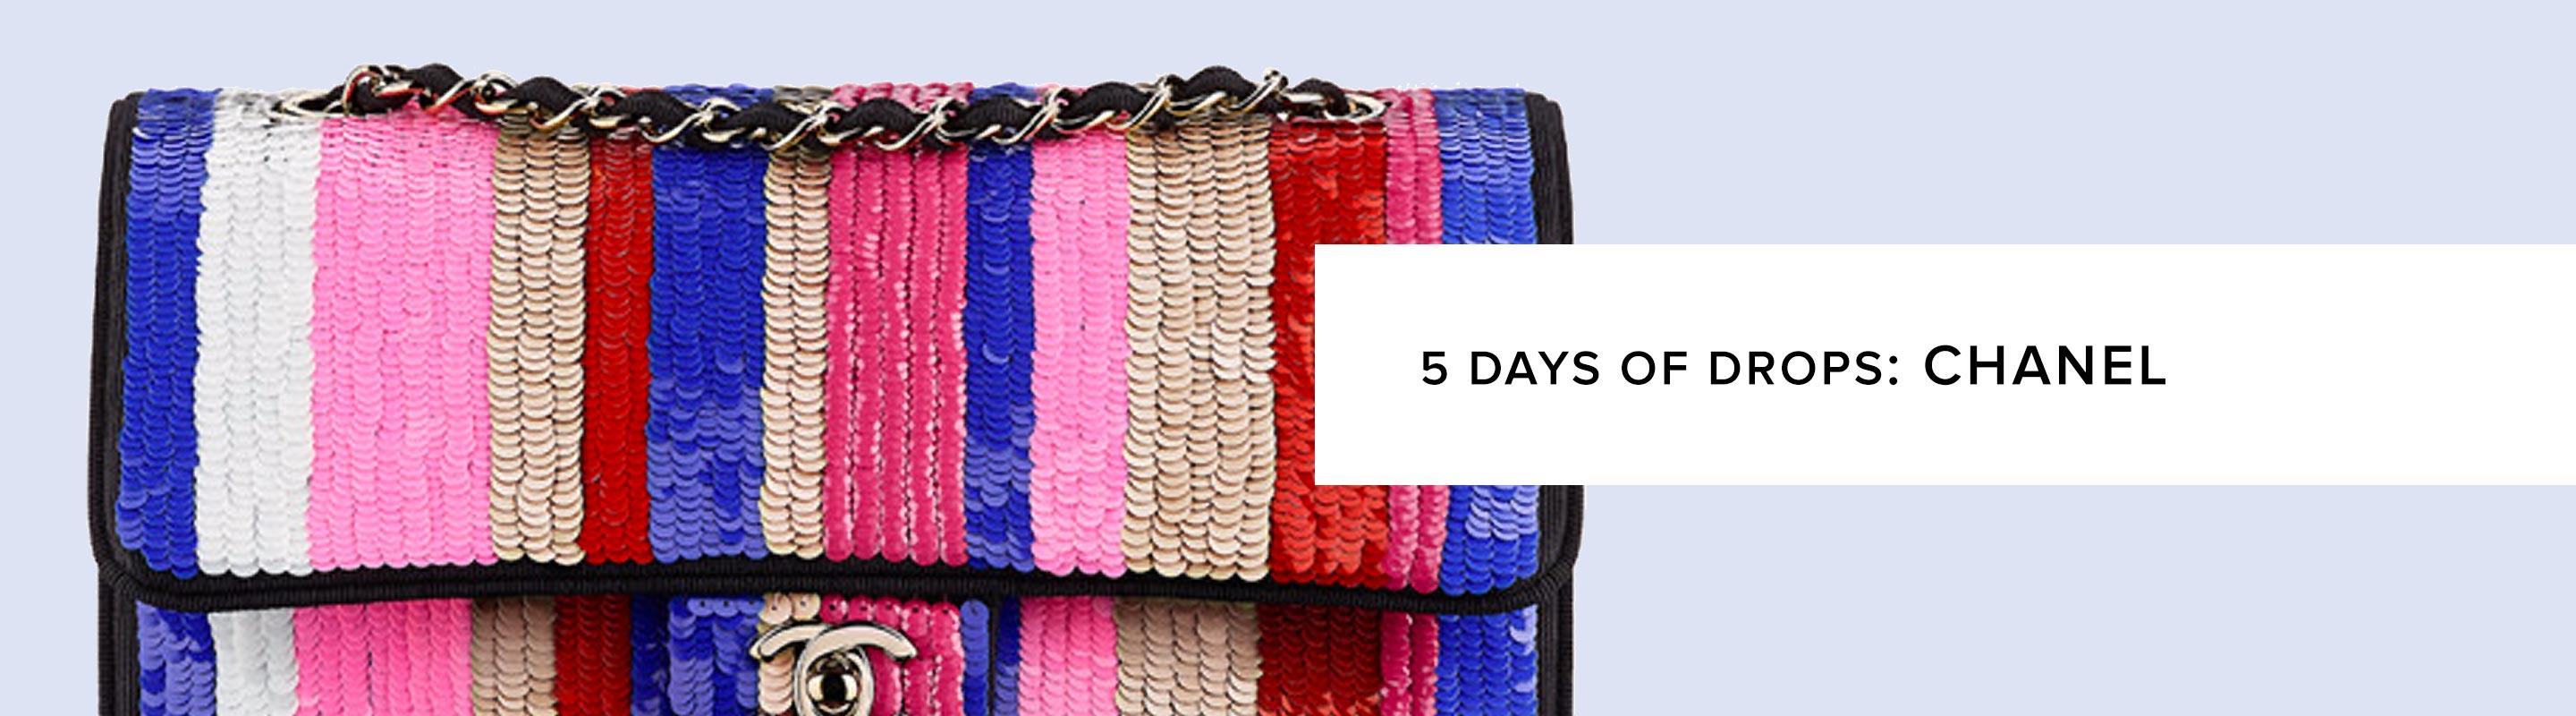 5 Days Of Drops: Chanel